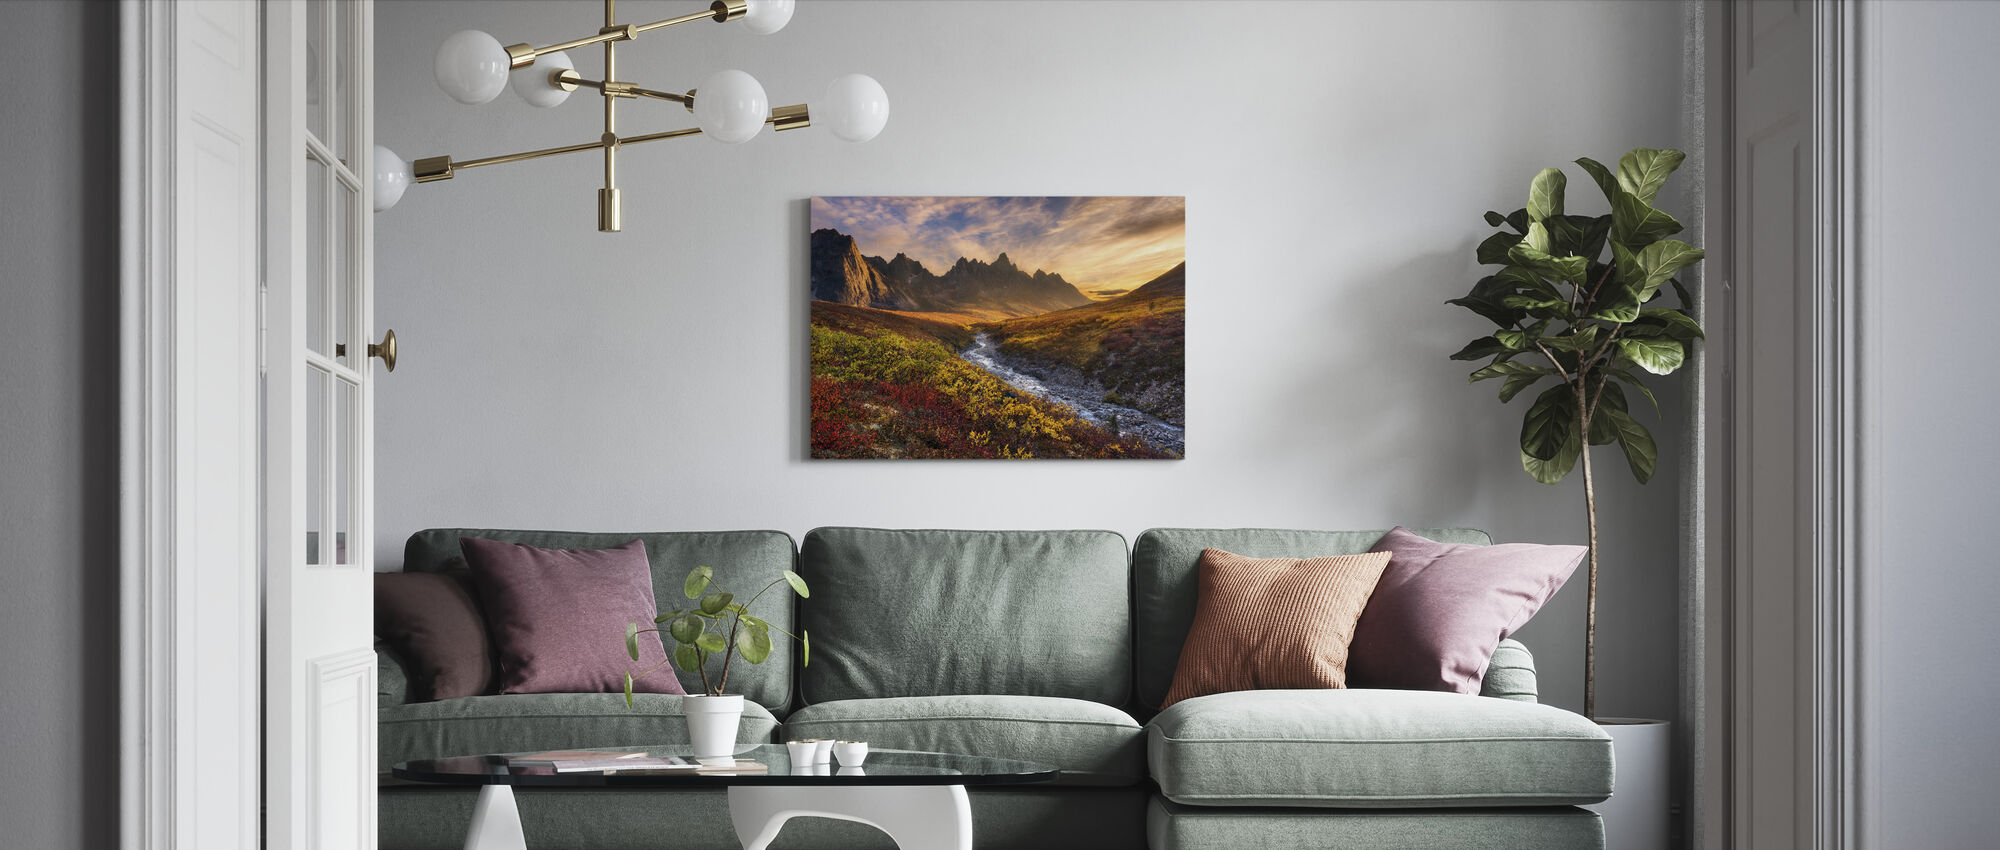 Mountain Paradise - Canvas print - Living Room